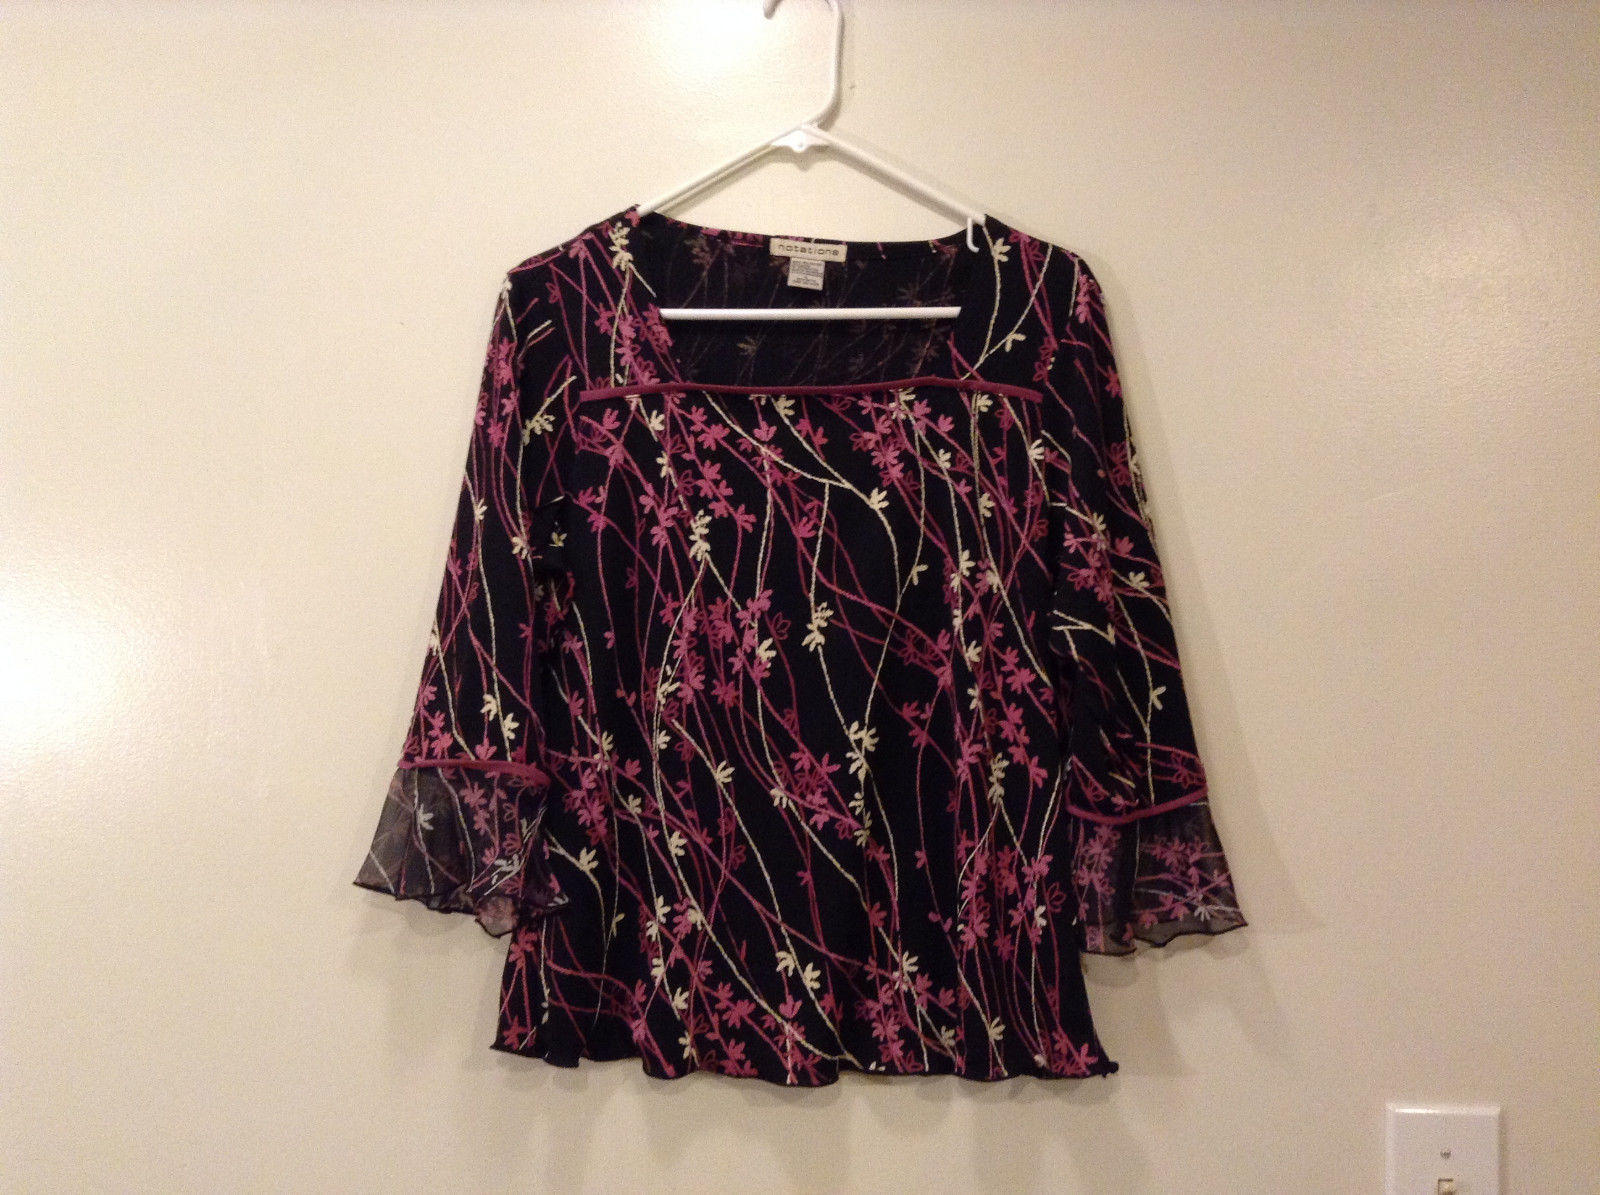 Notation Ladies Floral Blouse 3/4 sleeve 100% polyester size L